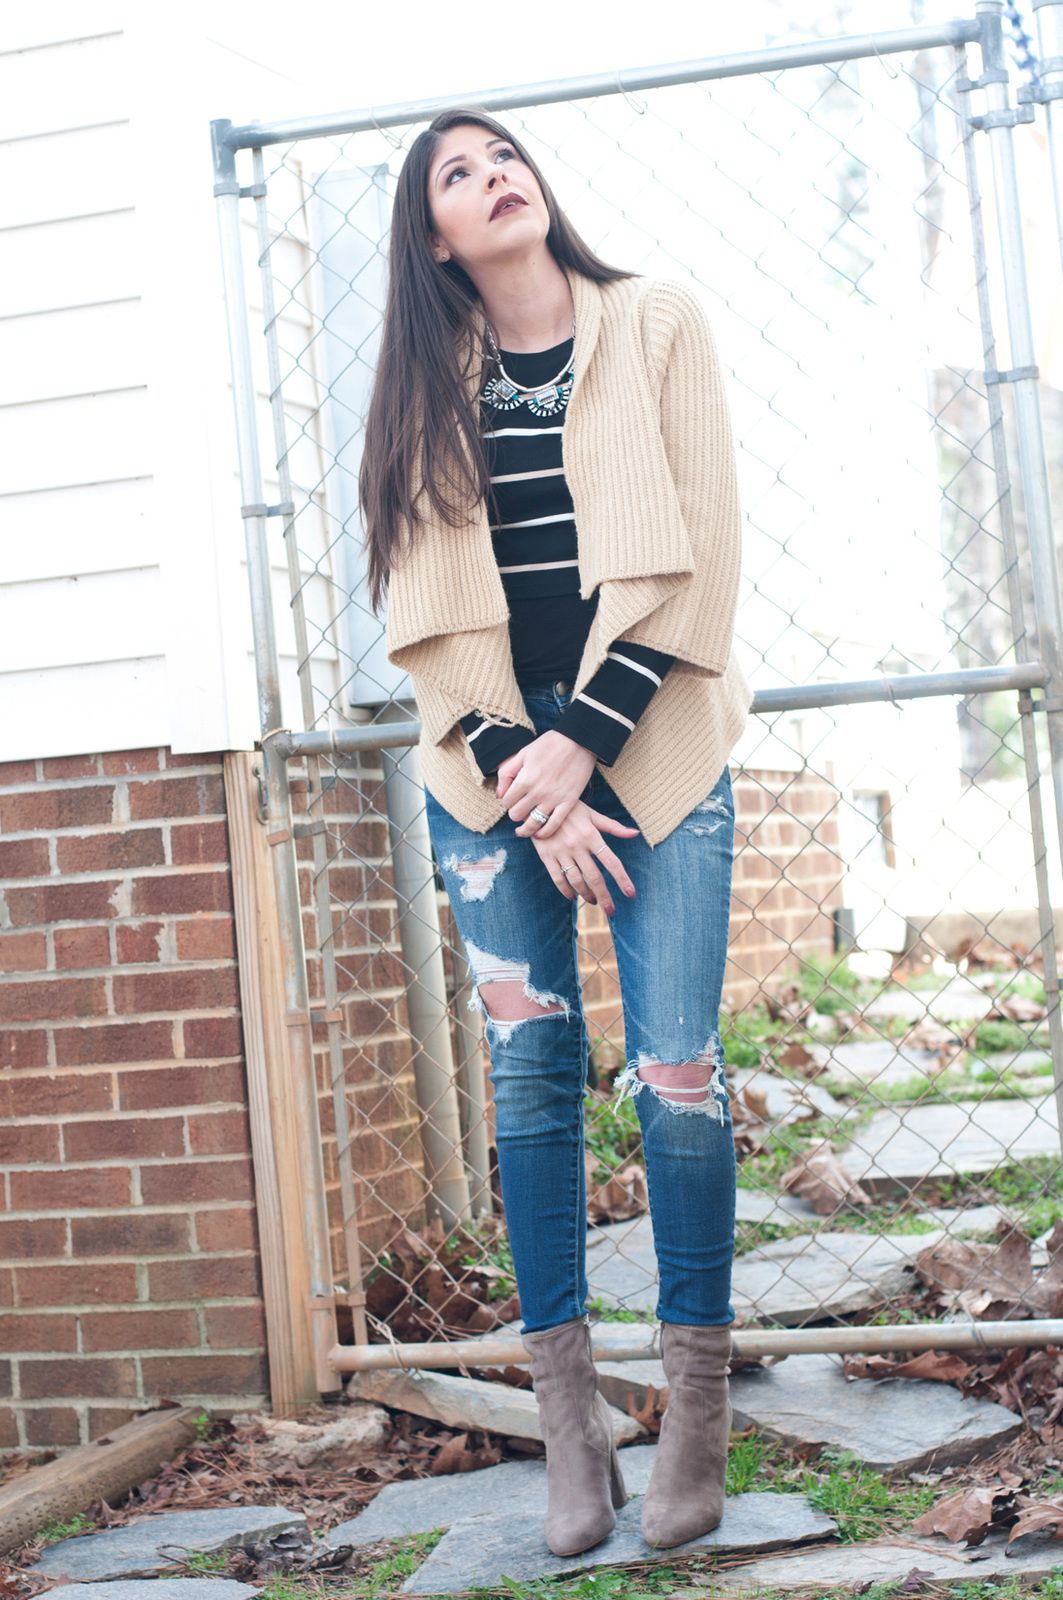 Stripes & Cream | Outfit of the Day Steve Madden Edit Boots, Ripped Jeans